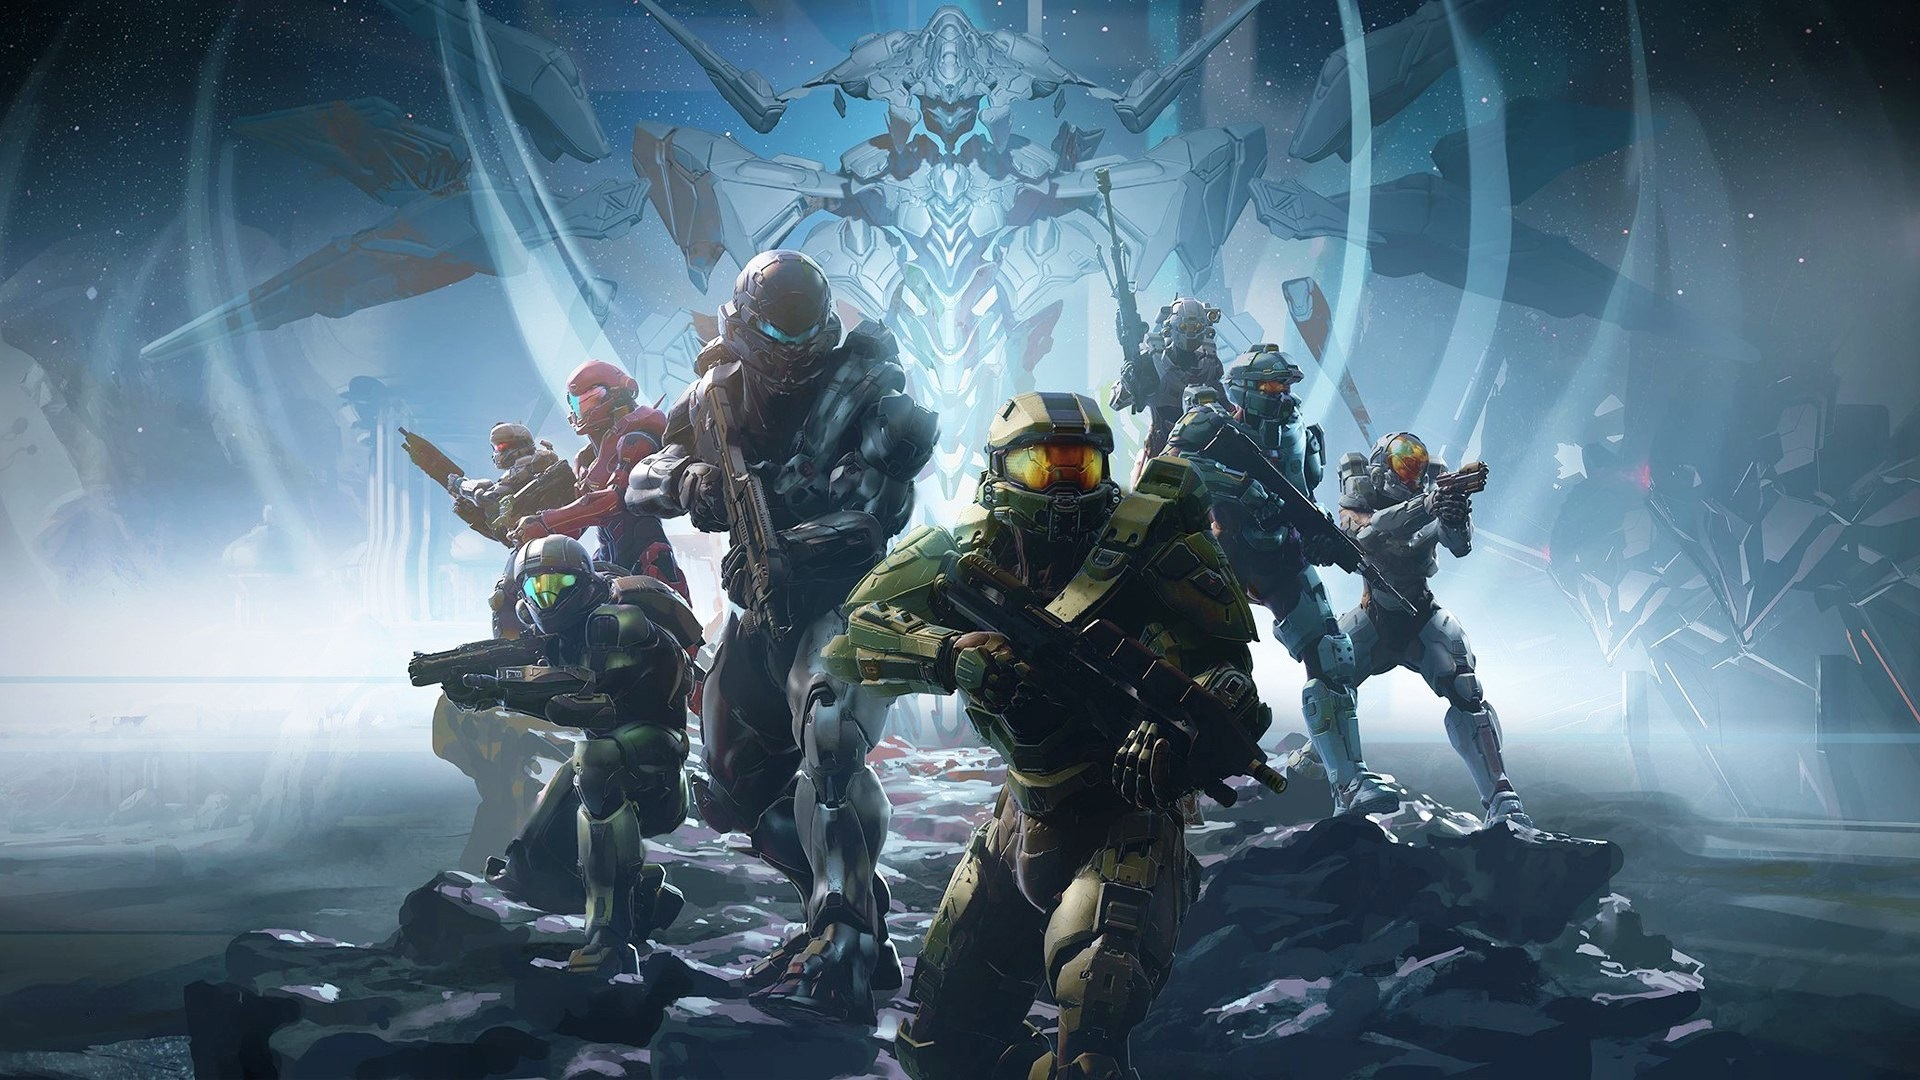 Halo 5 Guardians 640x960 Iphone 4 4s Wallpaper Background